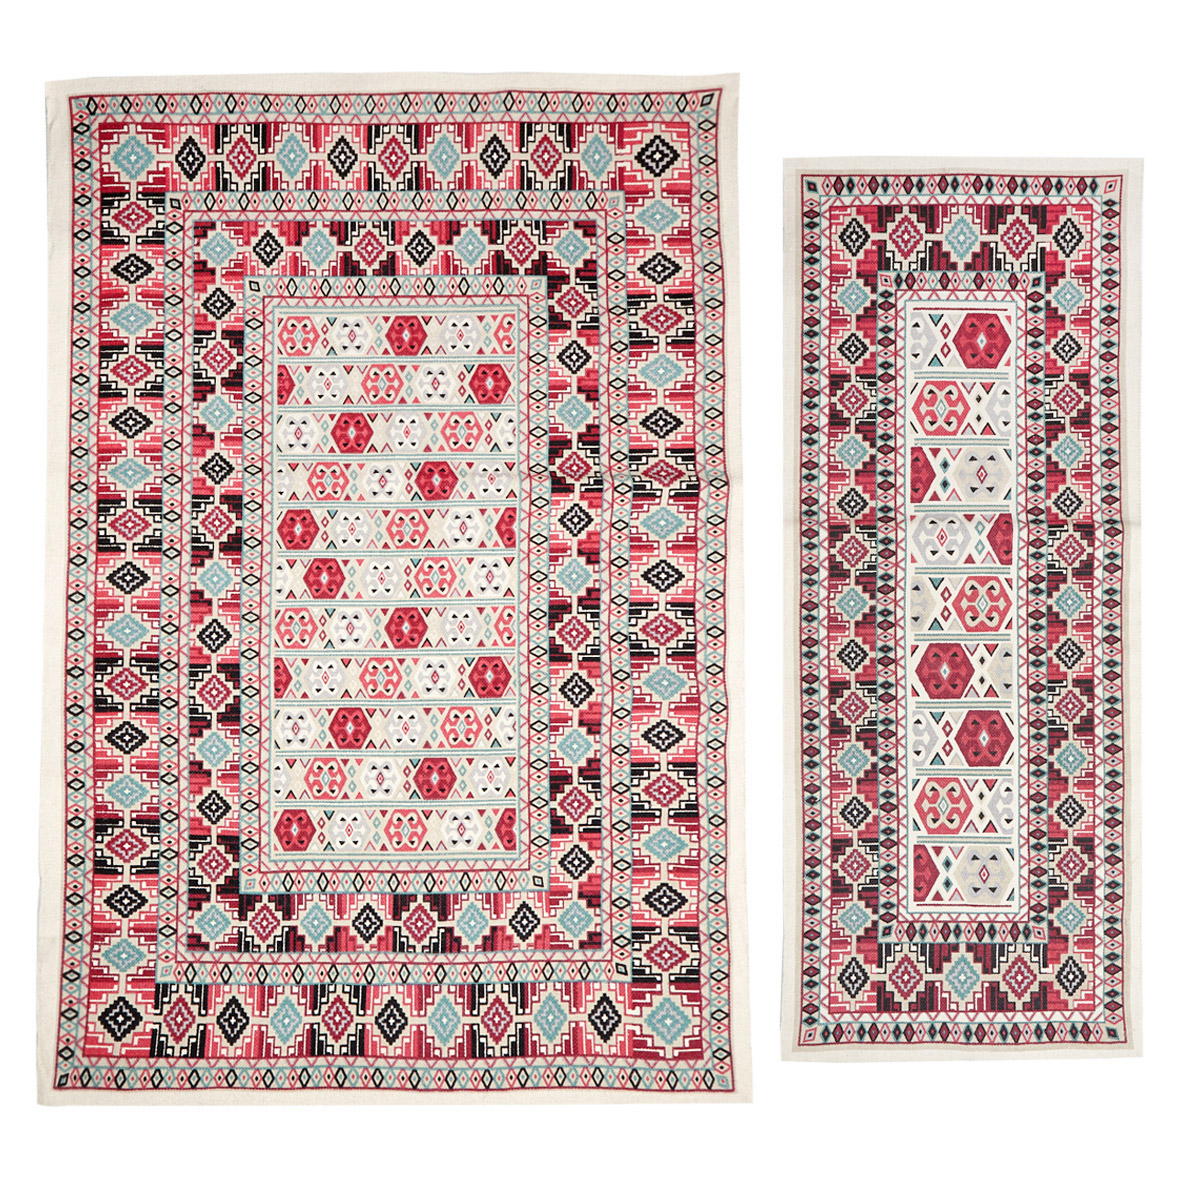 Red Carolyn Donnelly Eclectic Arabian Rug